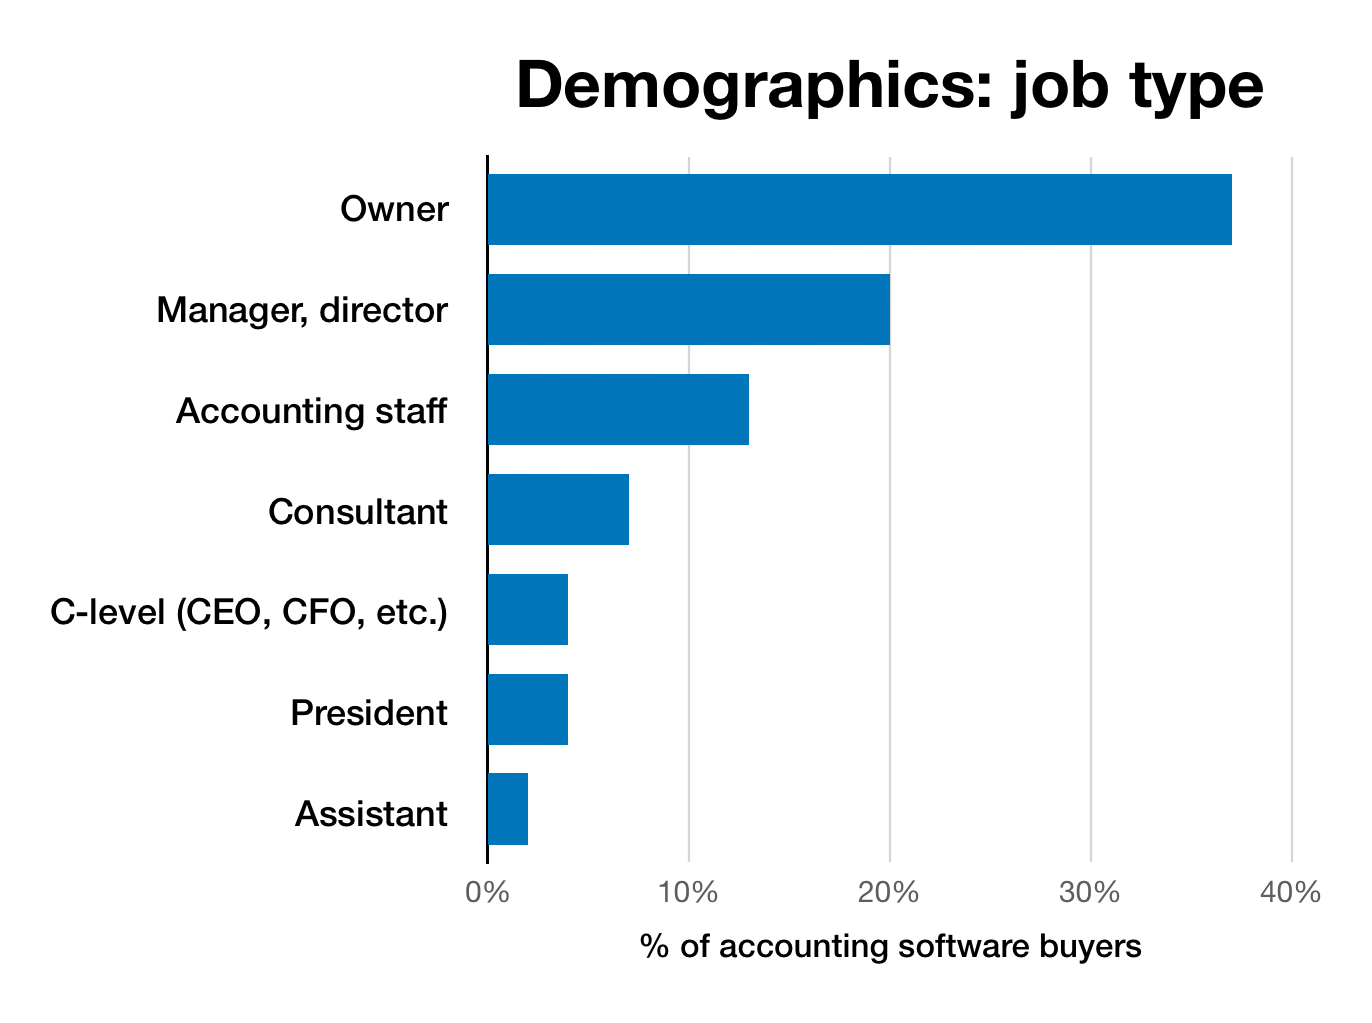 Chart of job type demographics